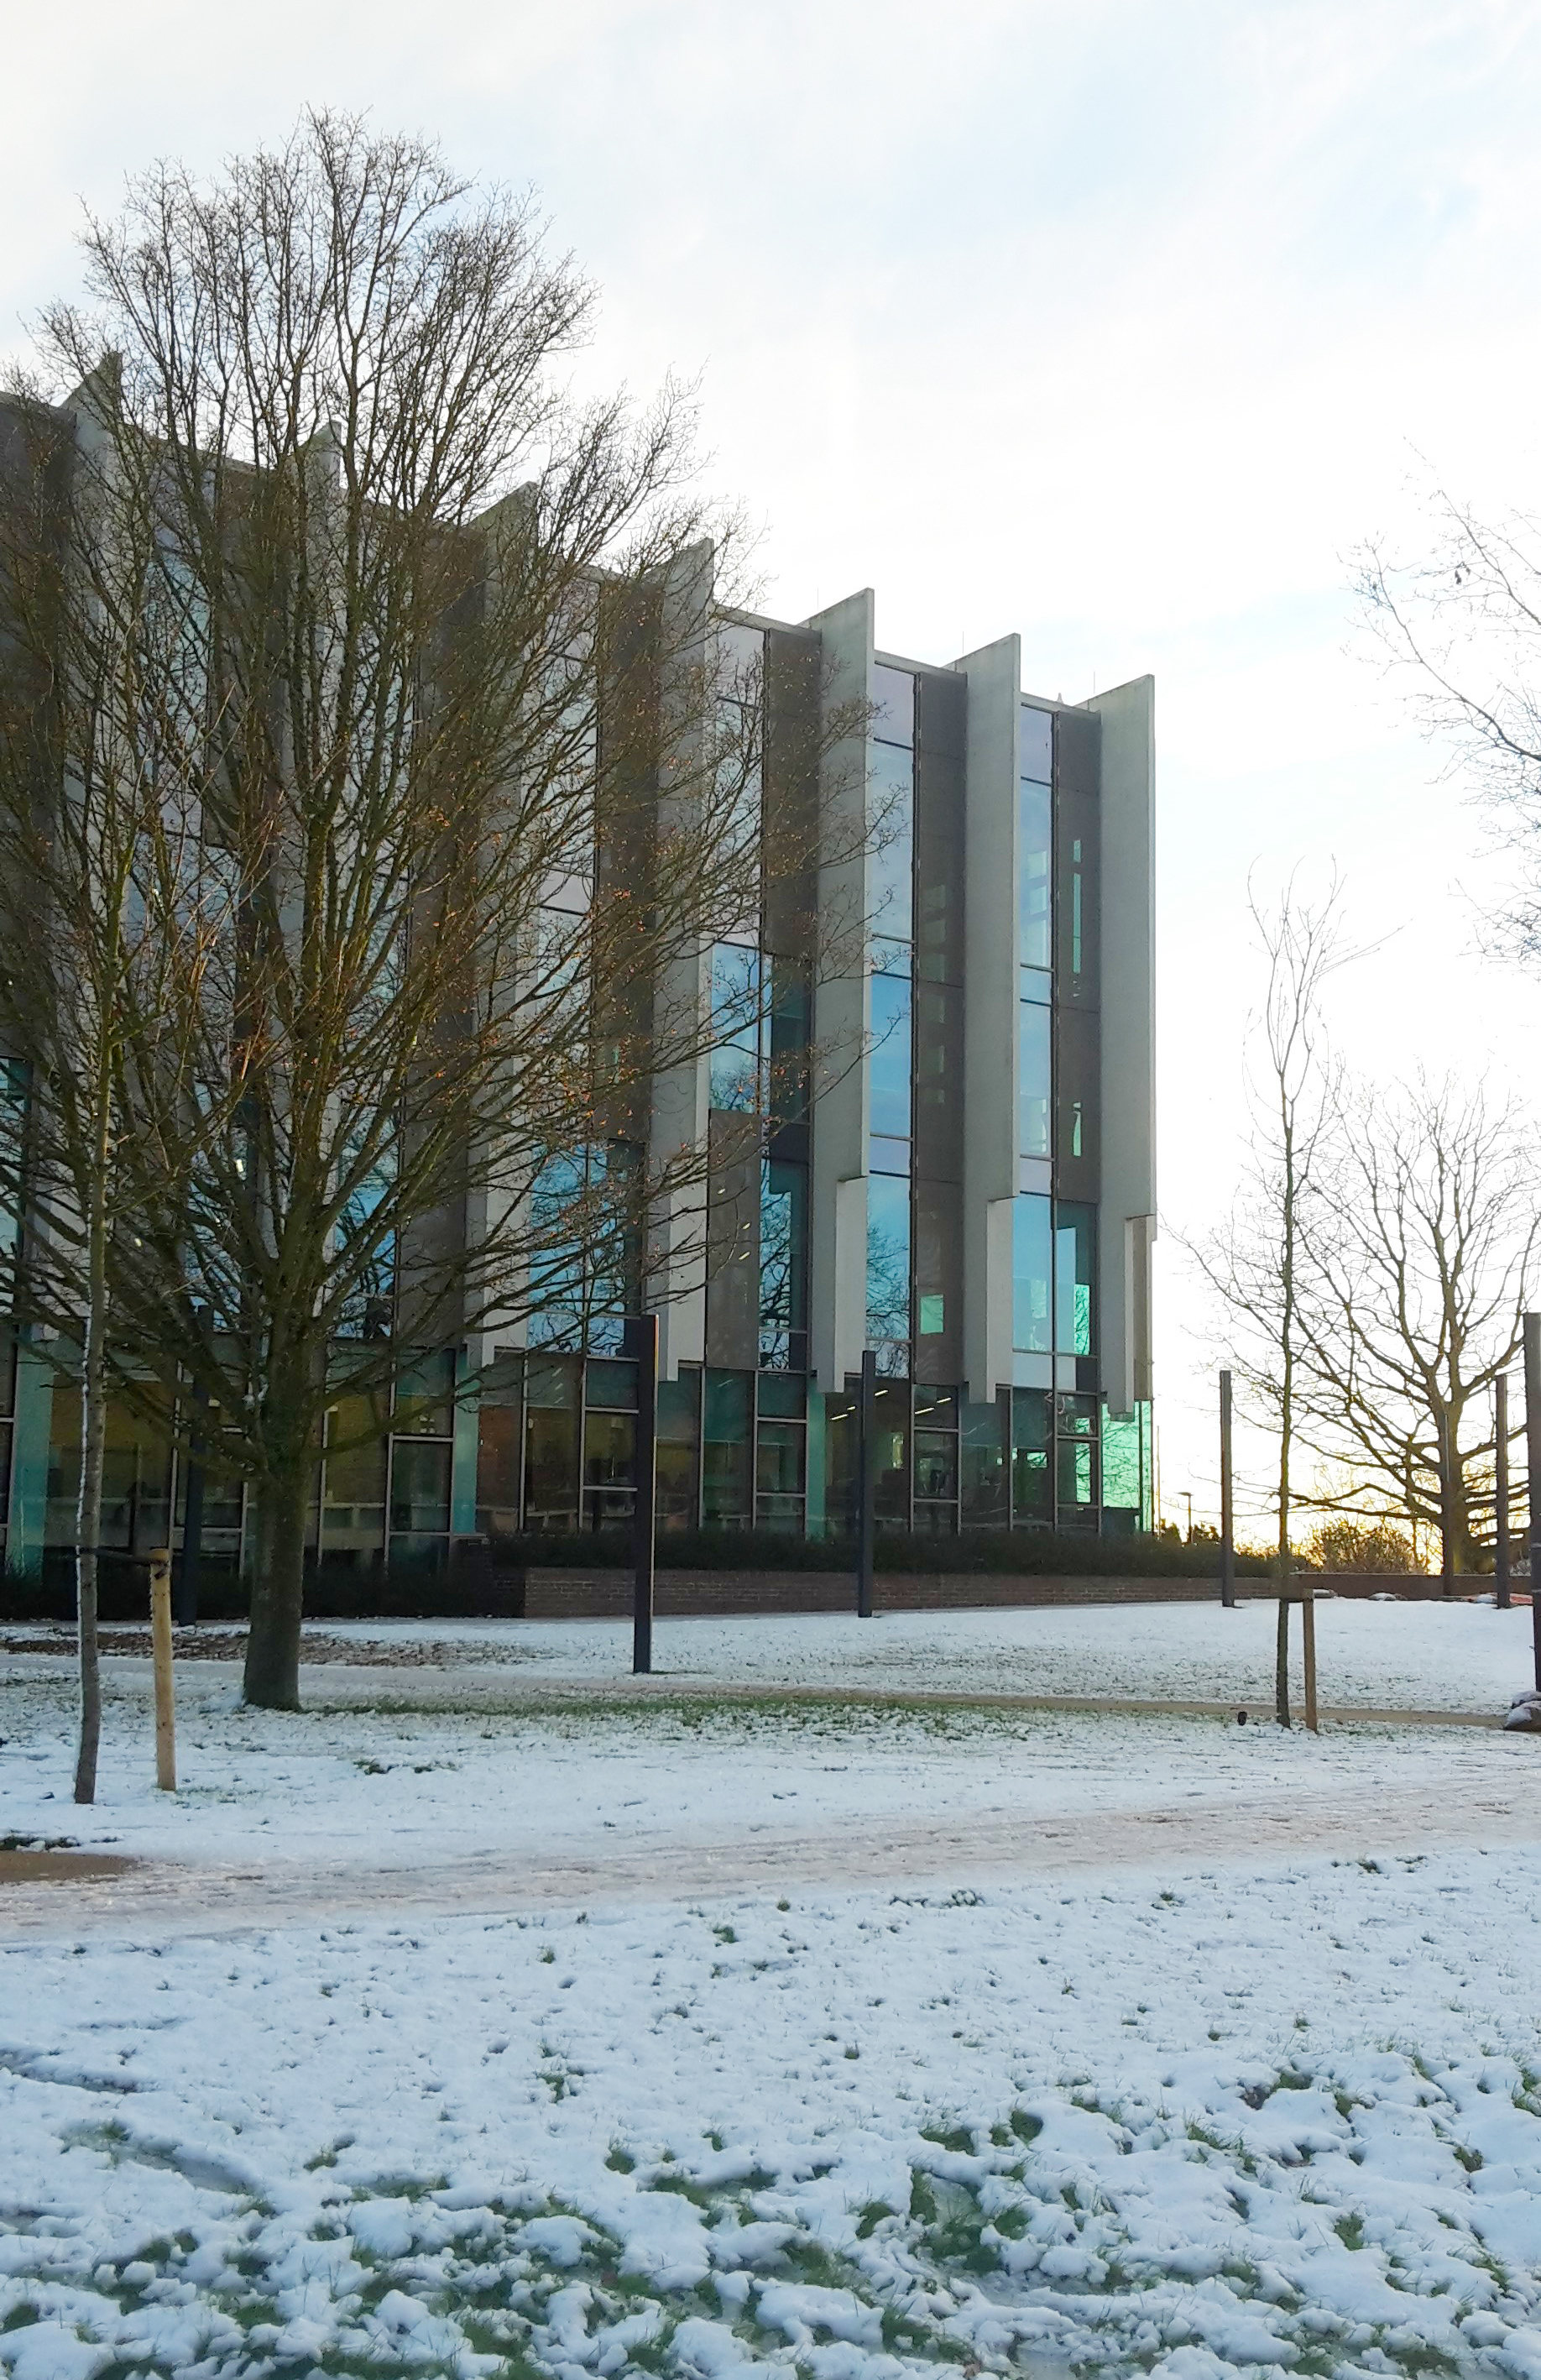 Templeman Library in the snow